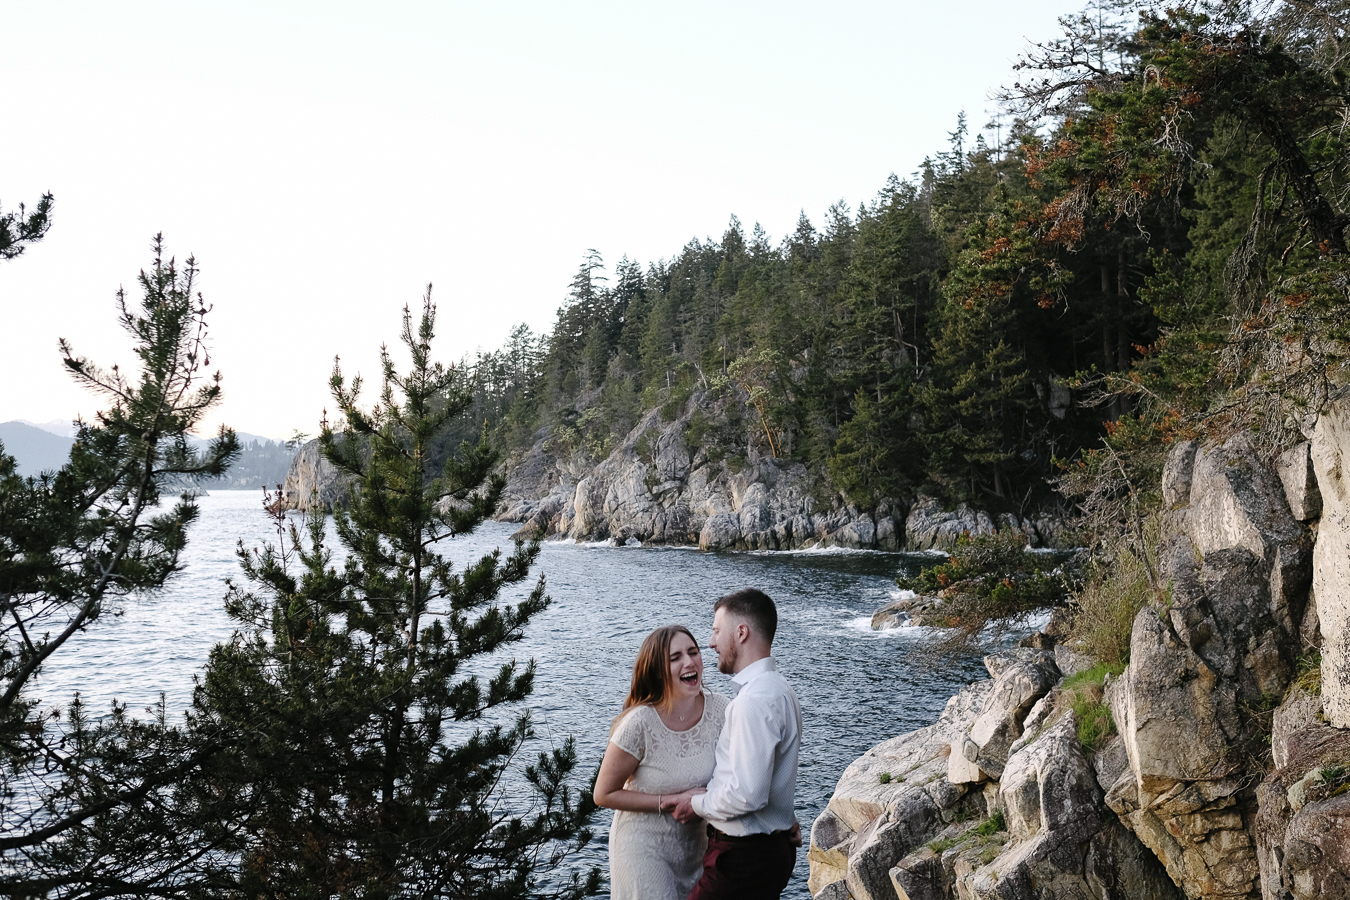 Pacific North West landscape with engaged couple laughing